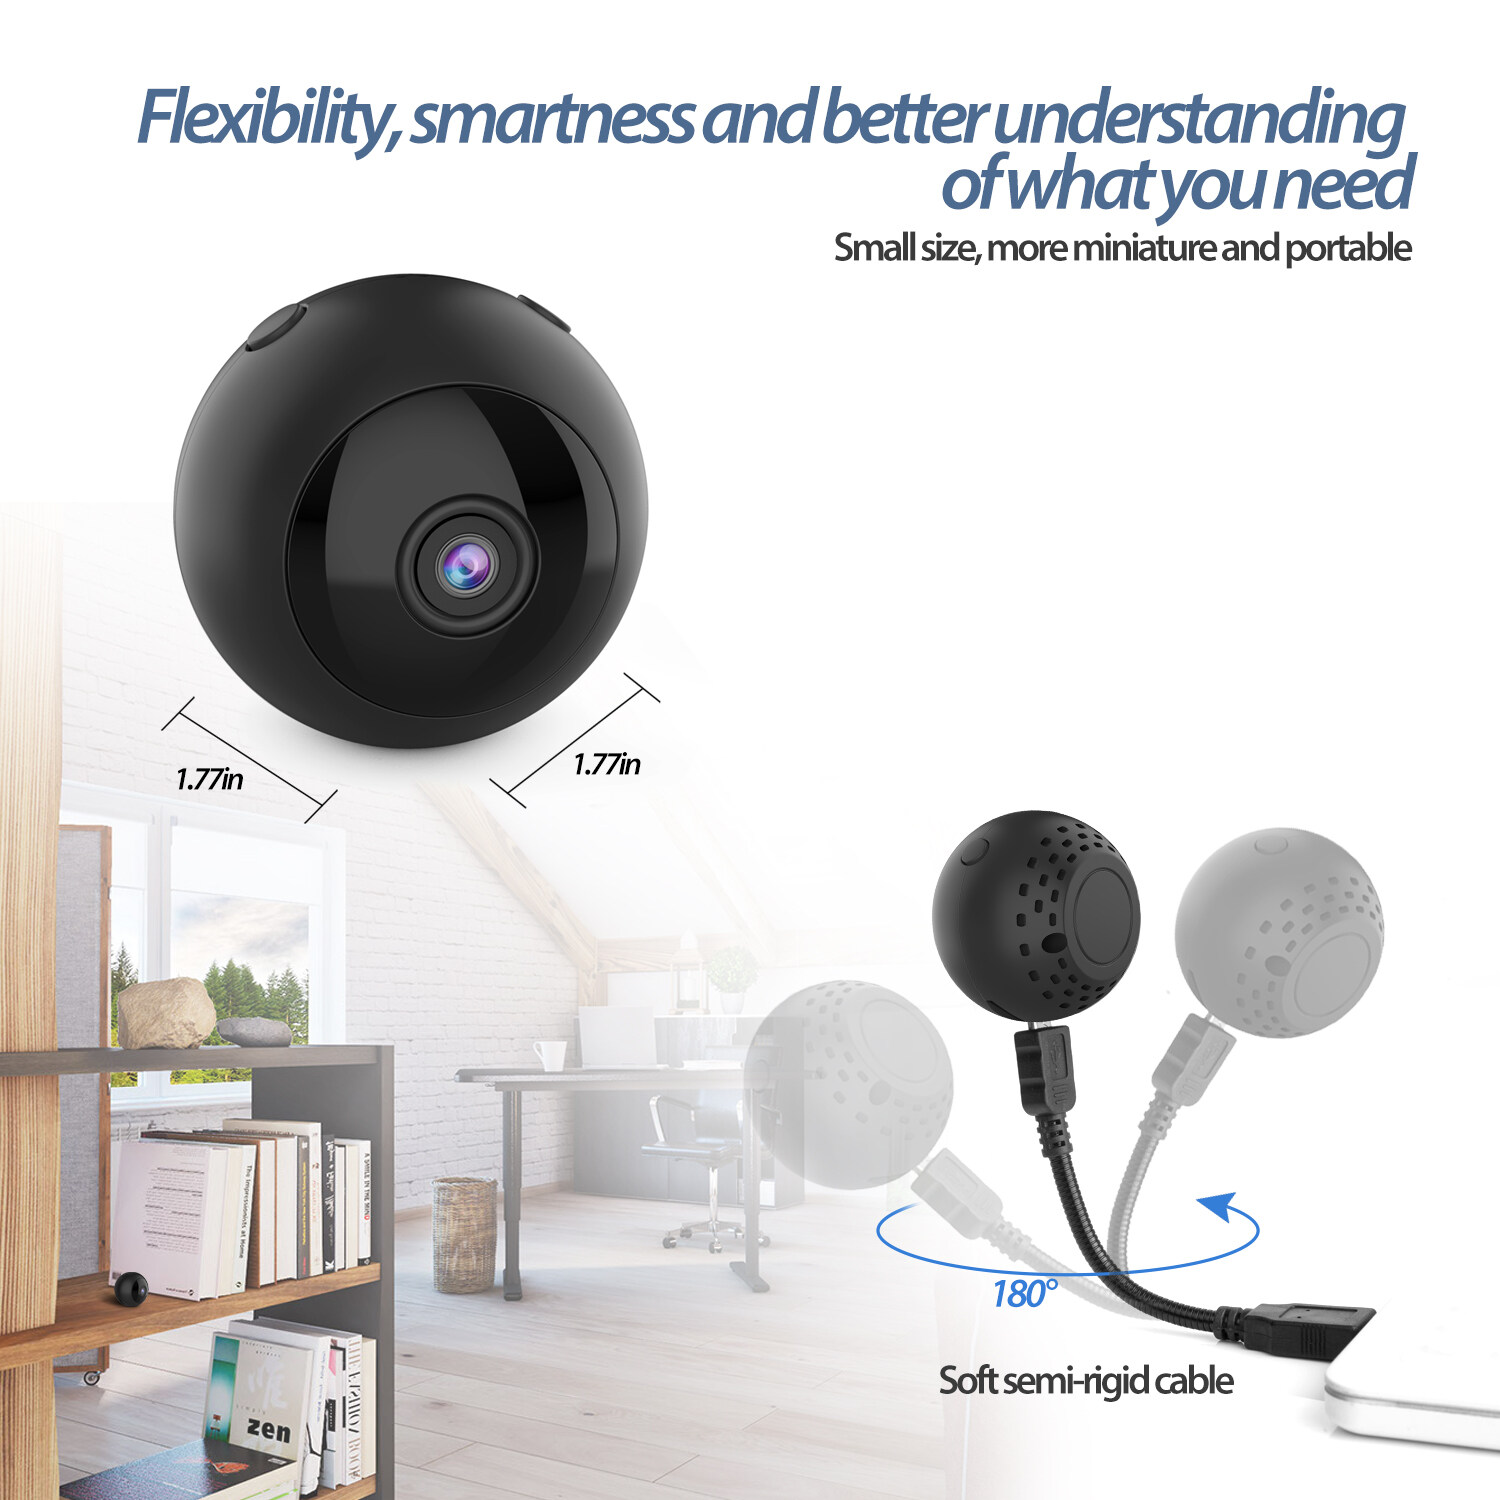 W8 Mini Wifi Camera Hd 1080p Magnet Bracket 150 Degree Wide Angle Night-Vis E3T6 2